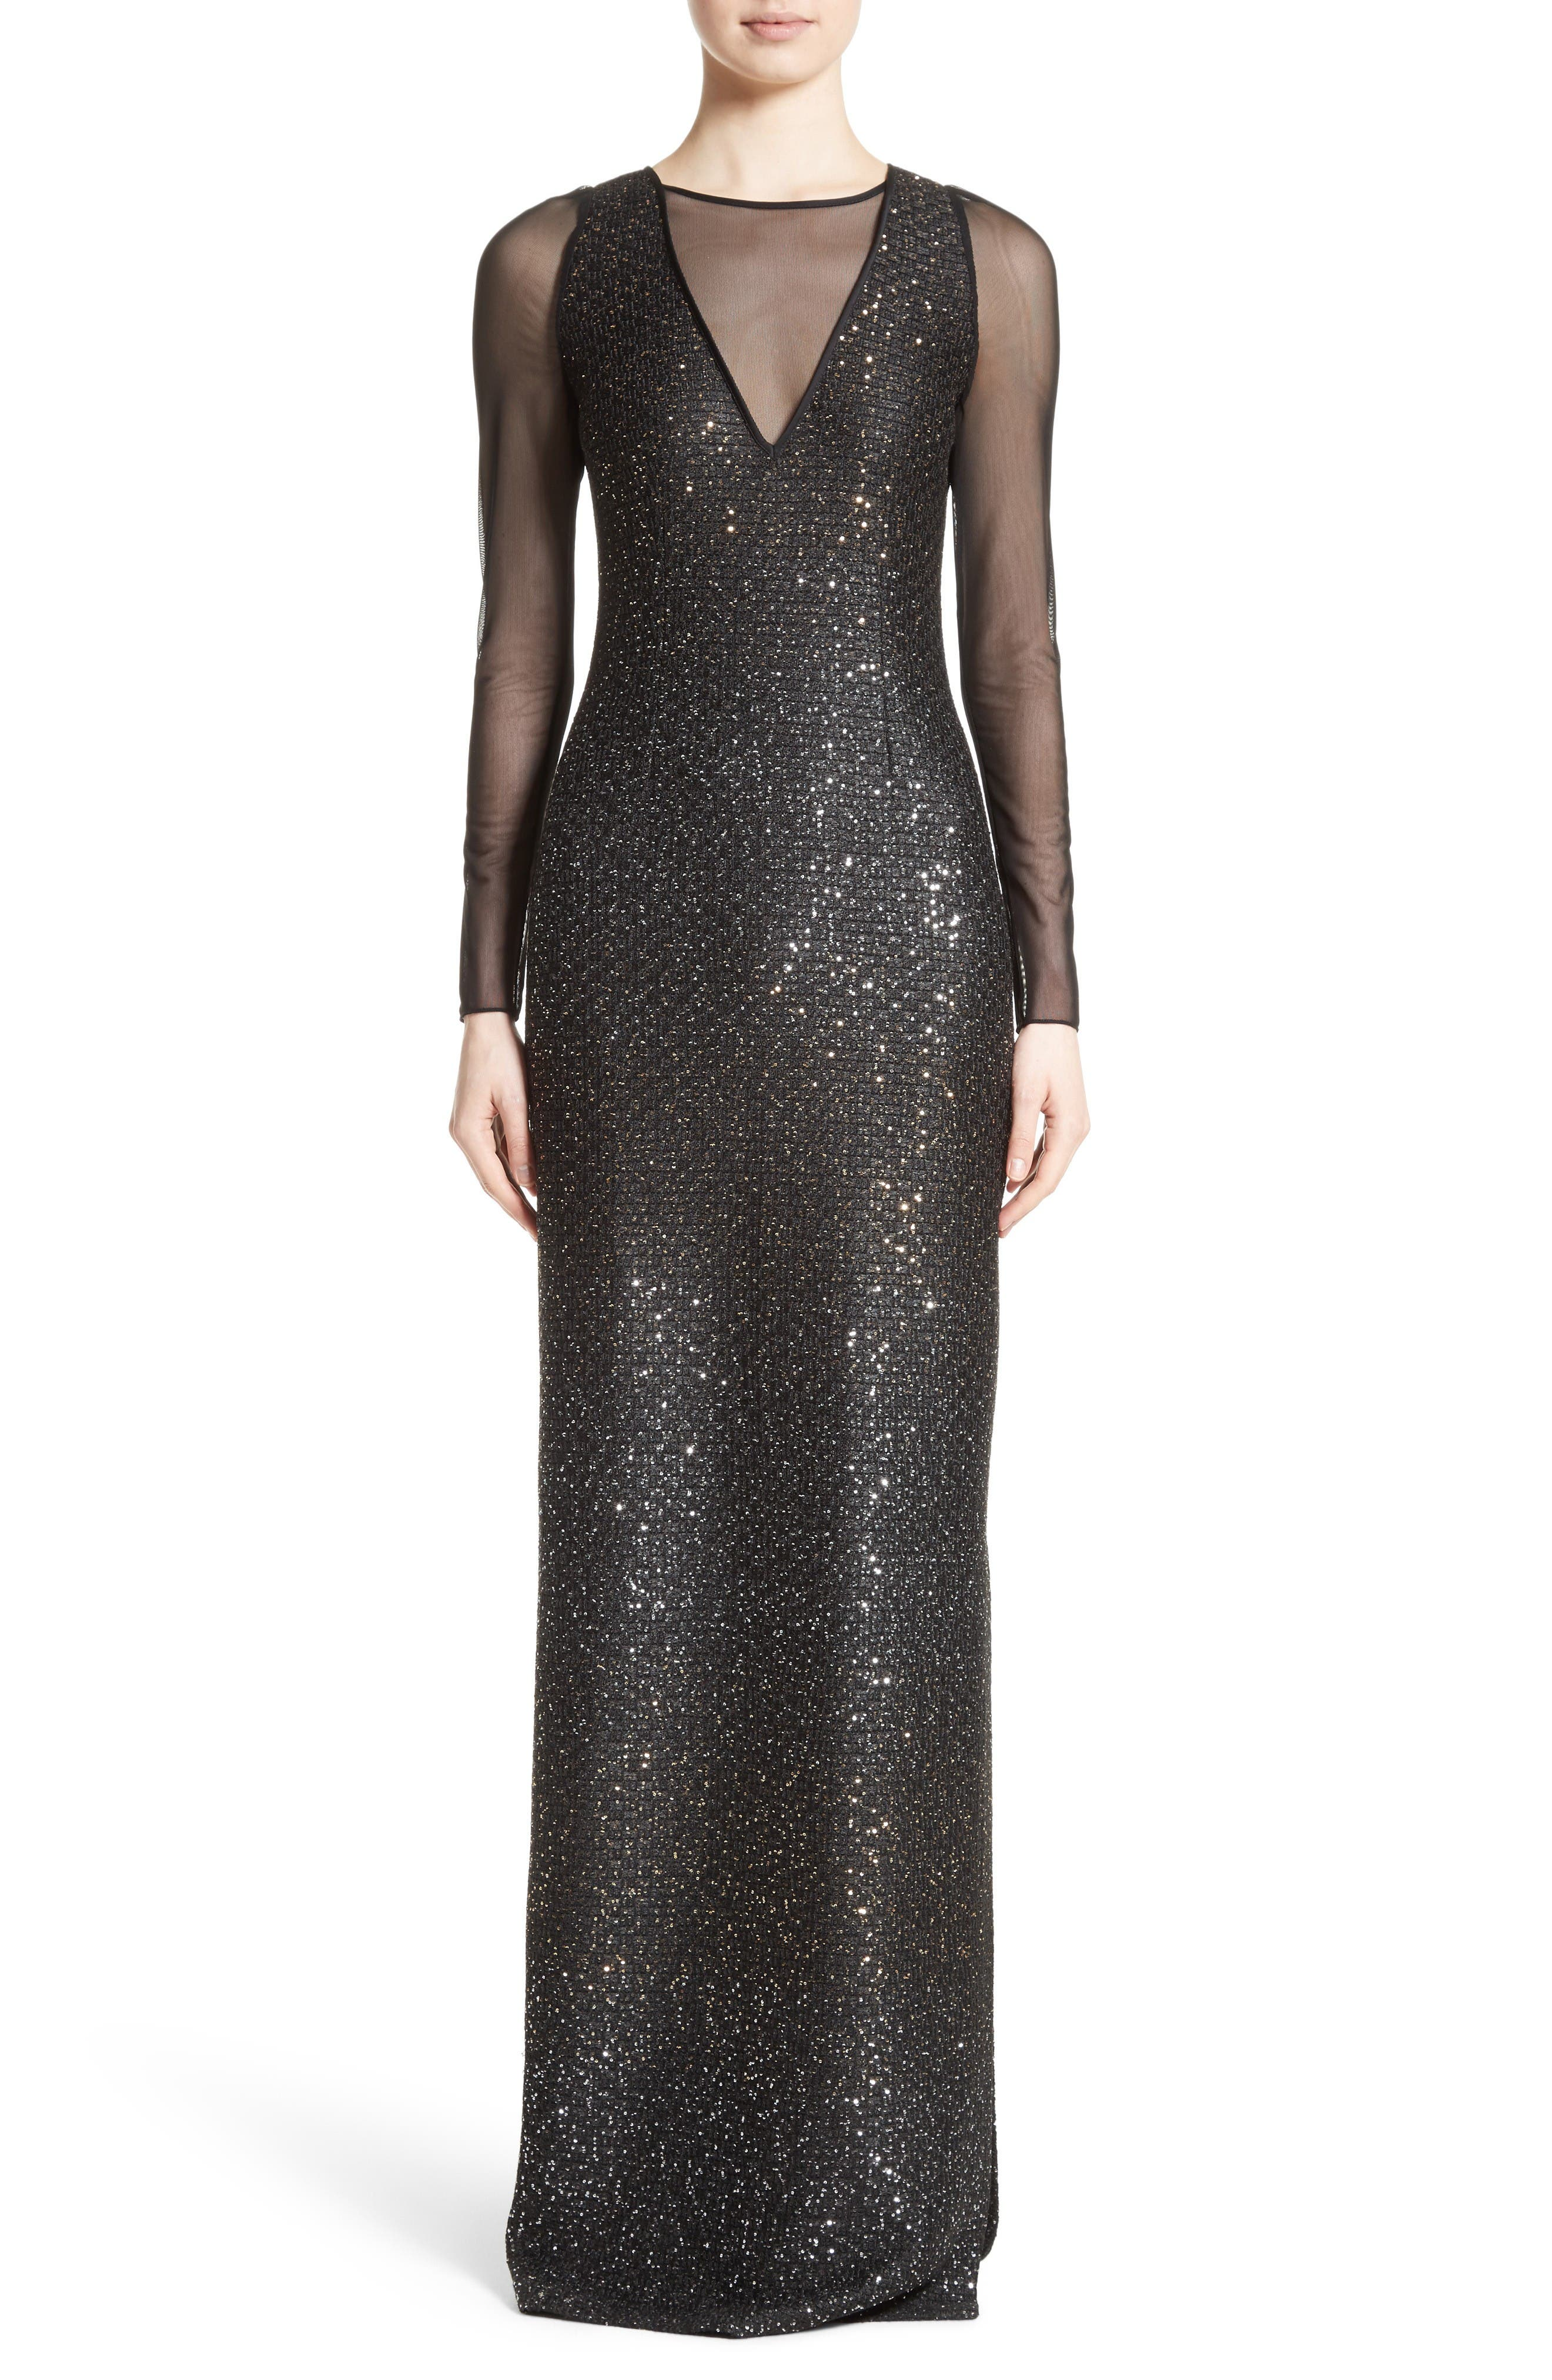 Main Image - St. John Evening Sequin Illusion Yoke Gown